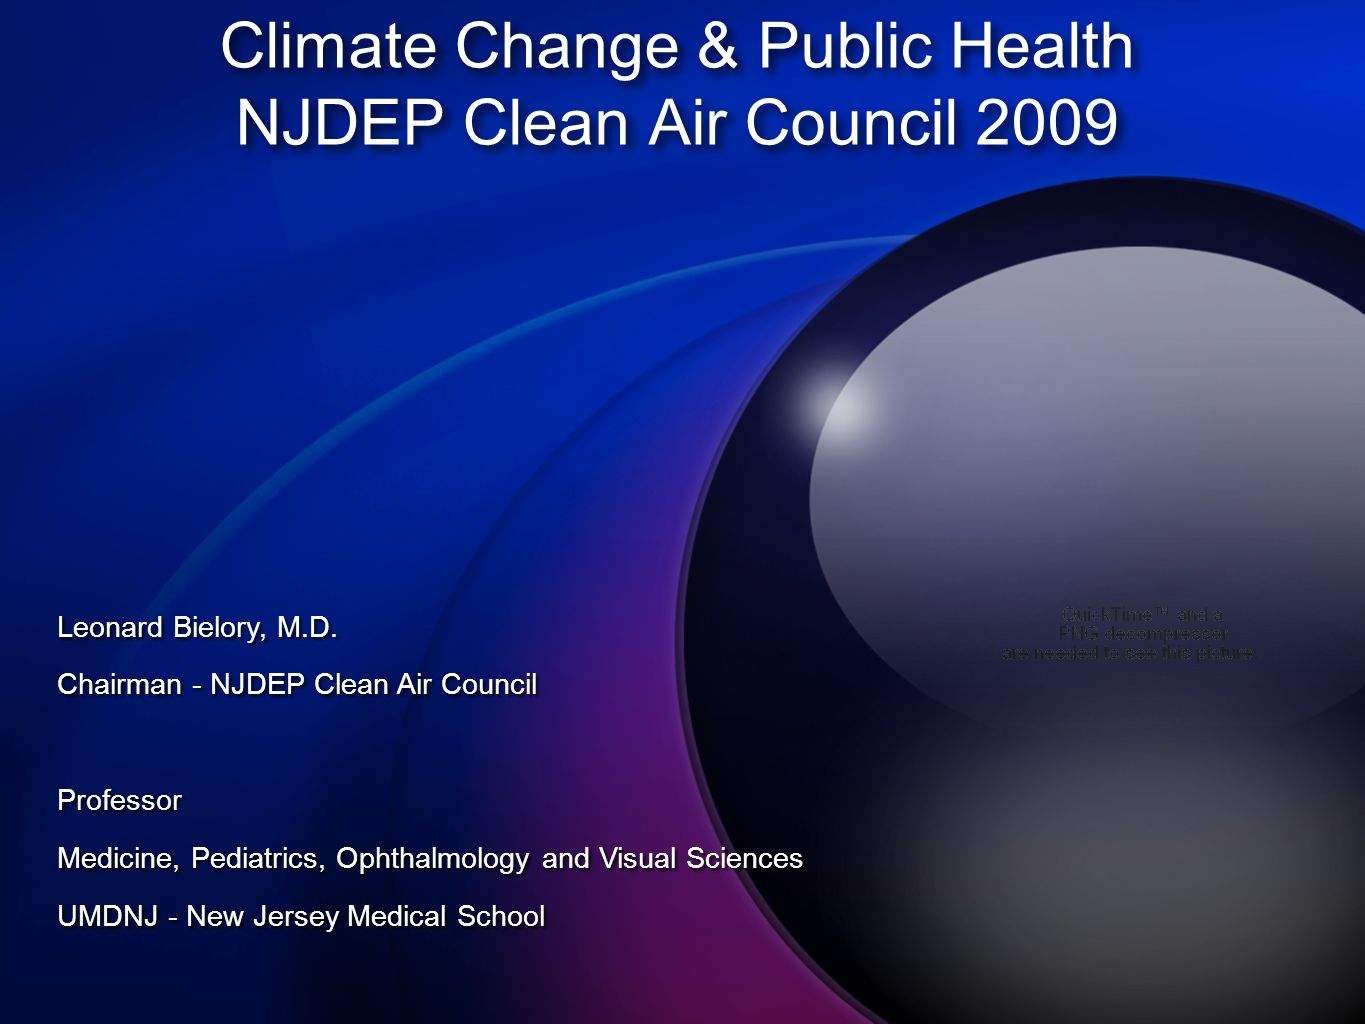 Climate Change & Public Health NJDEP Clean Air Council 2009 Leonard Bielory, M.D.